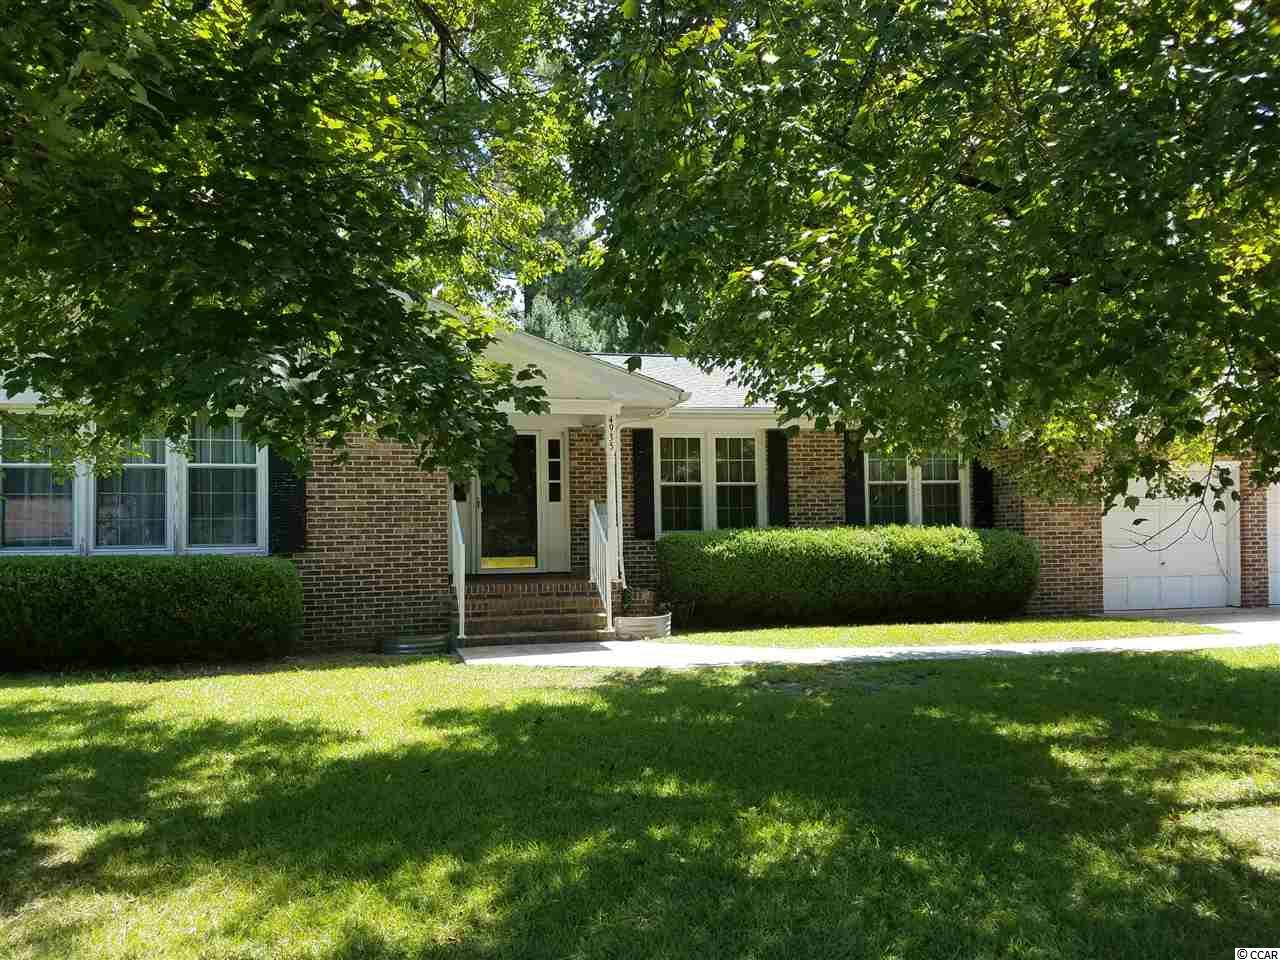 All brick home, peaceful, small neighborhood setting inside the City of Loris, SC. Two (2) completely new, floor to ceiling bathrooms, Master shower has been regrouted, cabinets refurbished, new vinyl floor.  New front door, new shutters,  new interior doors throughout house, Interior: all new fresh paint.  Crown molding added to formal living room, large foyer, family room, kitchen and the two new bathrooms.  Large eat in kitchen, with plenty of cabinets, and large pantry. All kitchen appliances are approximately 5yrs.  Generous size Carolina Room adds relaxation to the peaceful location of this property.  Large fully fenced in backyard great for children and/or pets. Oversized laundry room, washer & dryer included.  Front & Back exterior has fresh paint and back half of house has new roofing. Two car garage with workbench area has new walls, fresh paint and sealant on floor.   Easy access under home with lighting added. Also, a 12x15 shed freshly painted as well, included with home.  Home is move in ready!! During the current ownership, no incidents of any water intrusions to the land or property have occured.   All measurements are approximate & not guaranteed. Buyer responsible to verify.